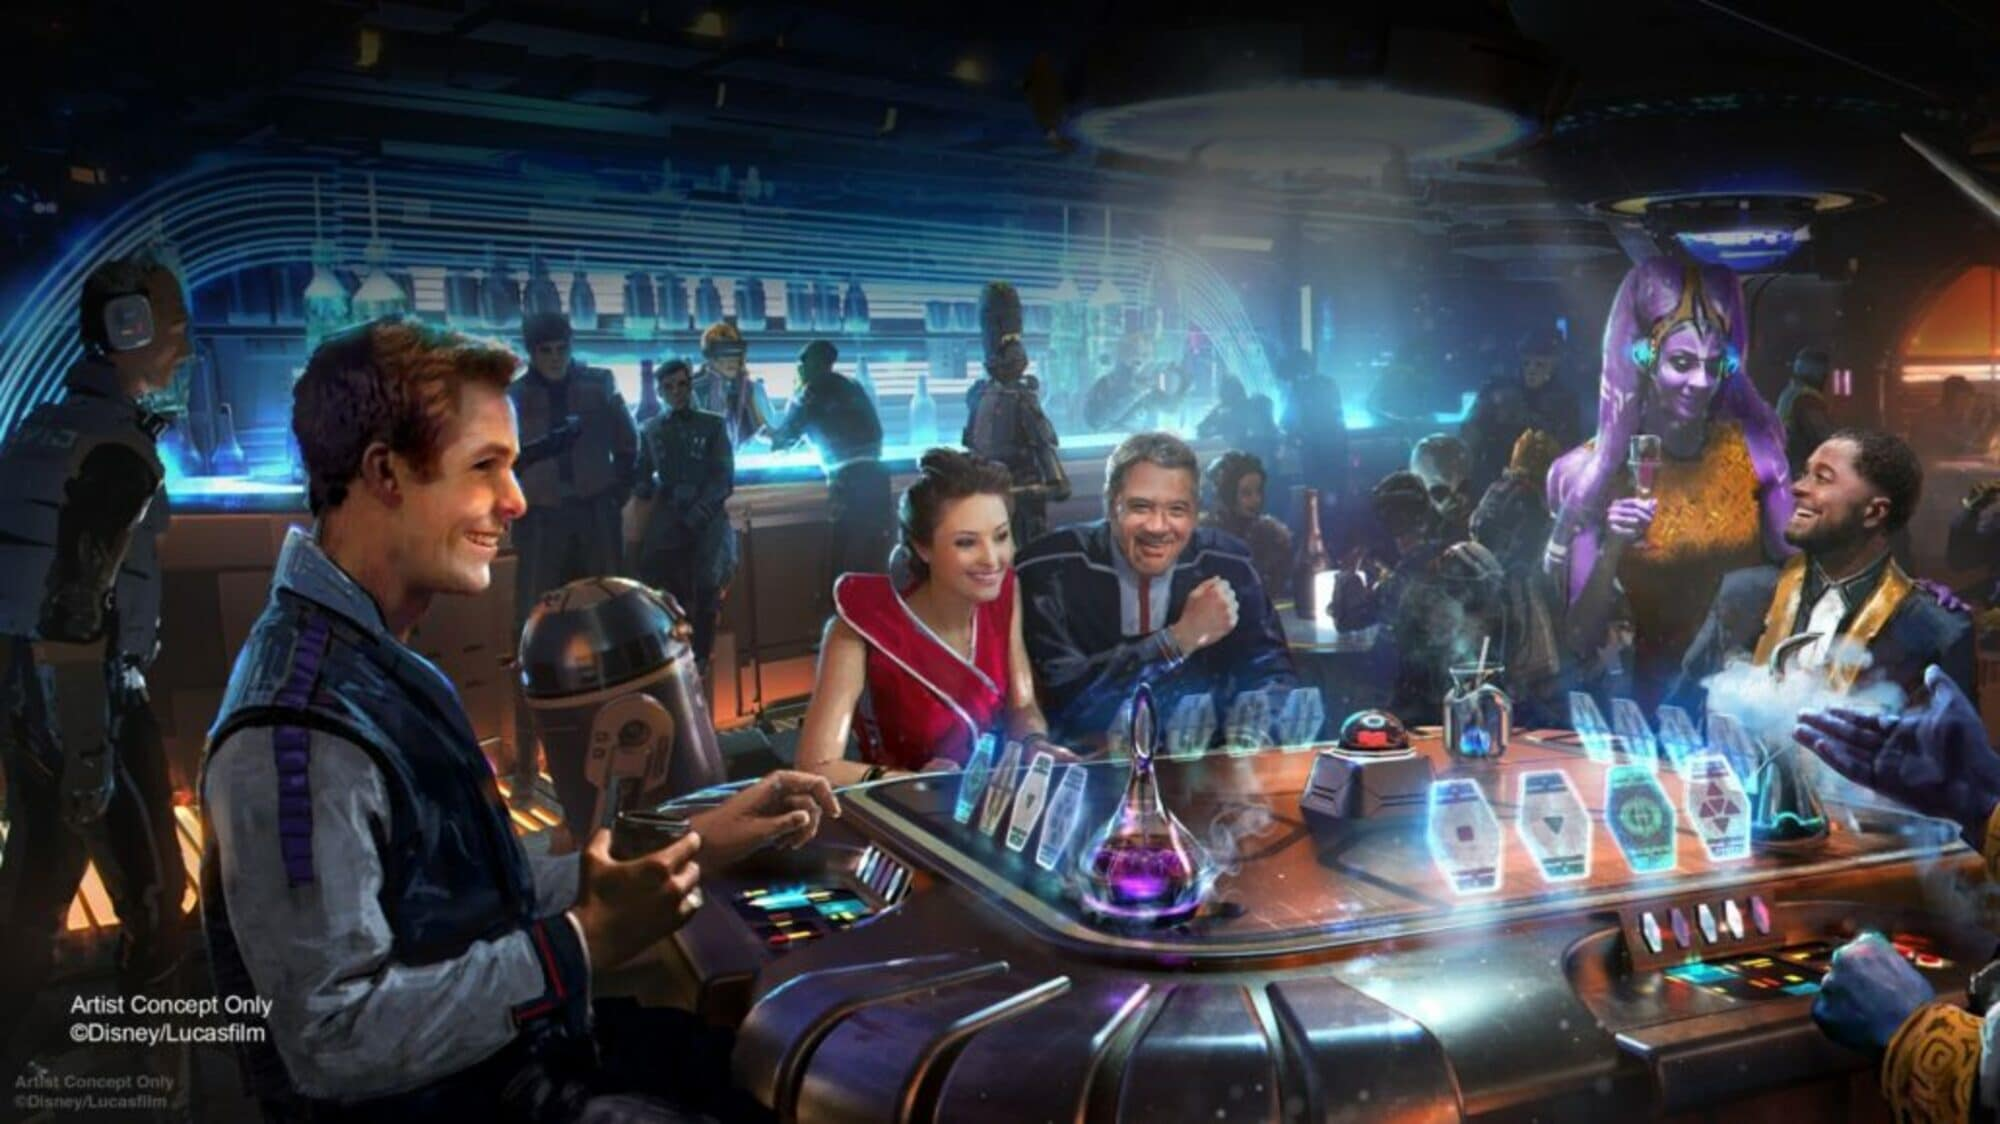 Star Wars: Galactic Starcruiser is opening at Disney World in 2022 19